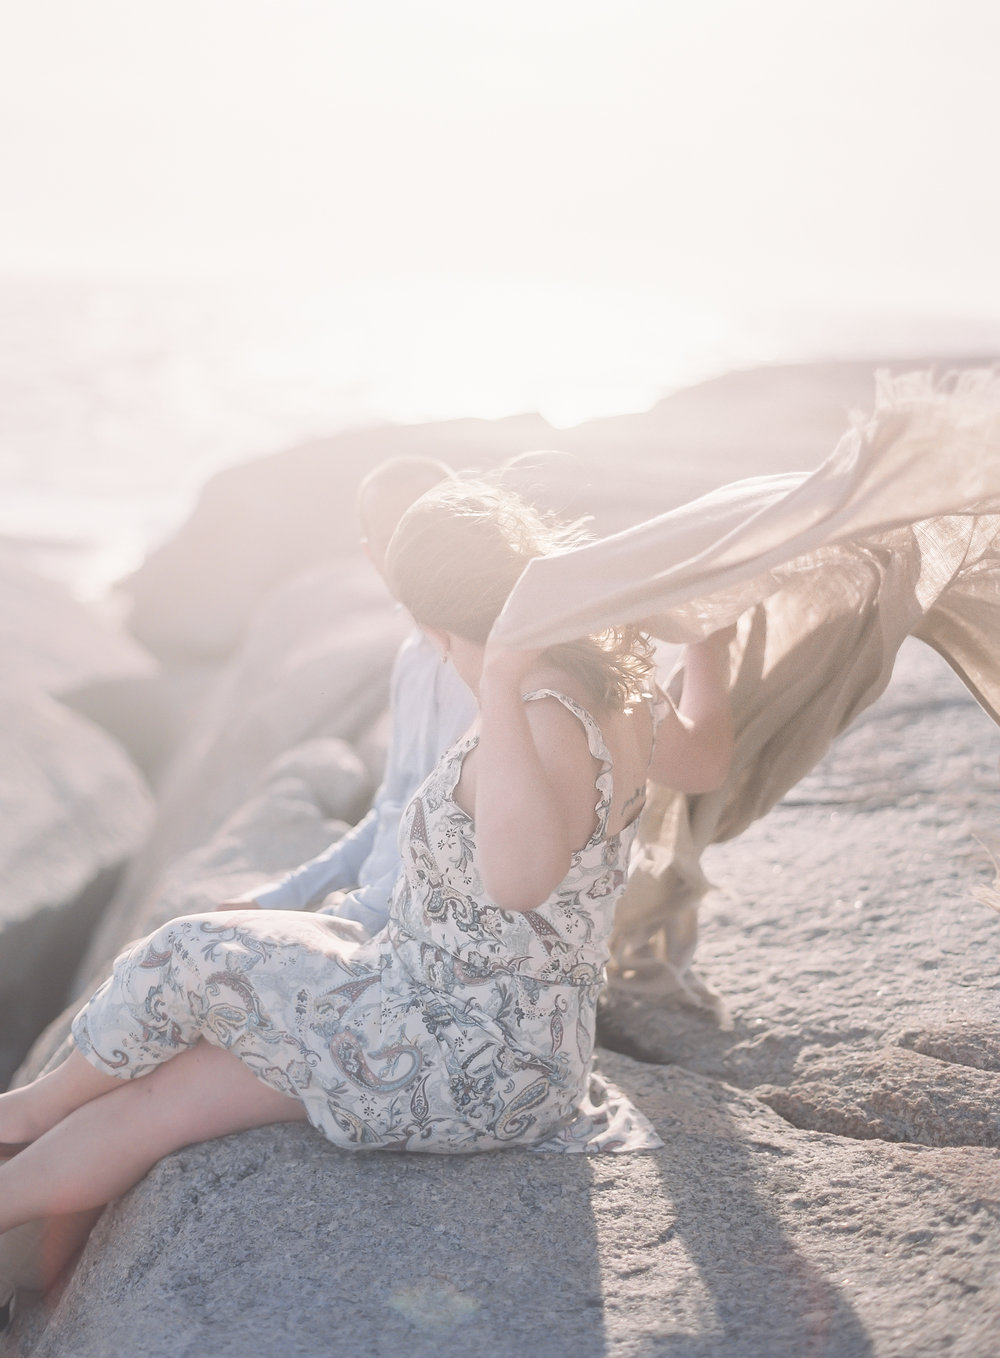 Jacqueline Anne Photography - Alex and Andrew Engagement at Peggy's Cove - Halifax-89.jpg